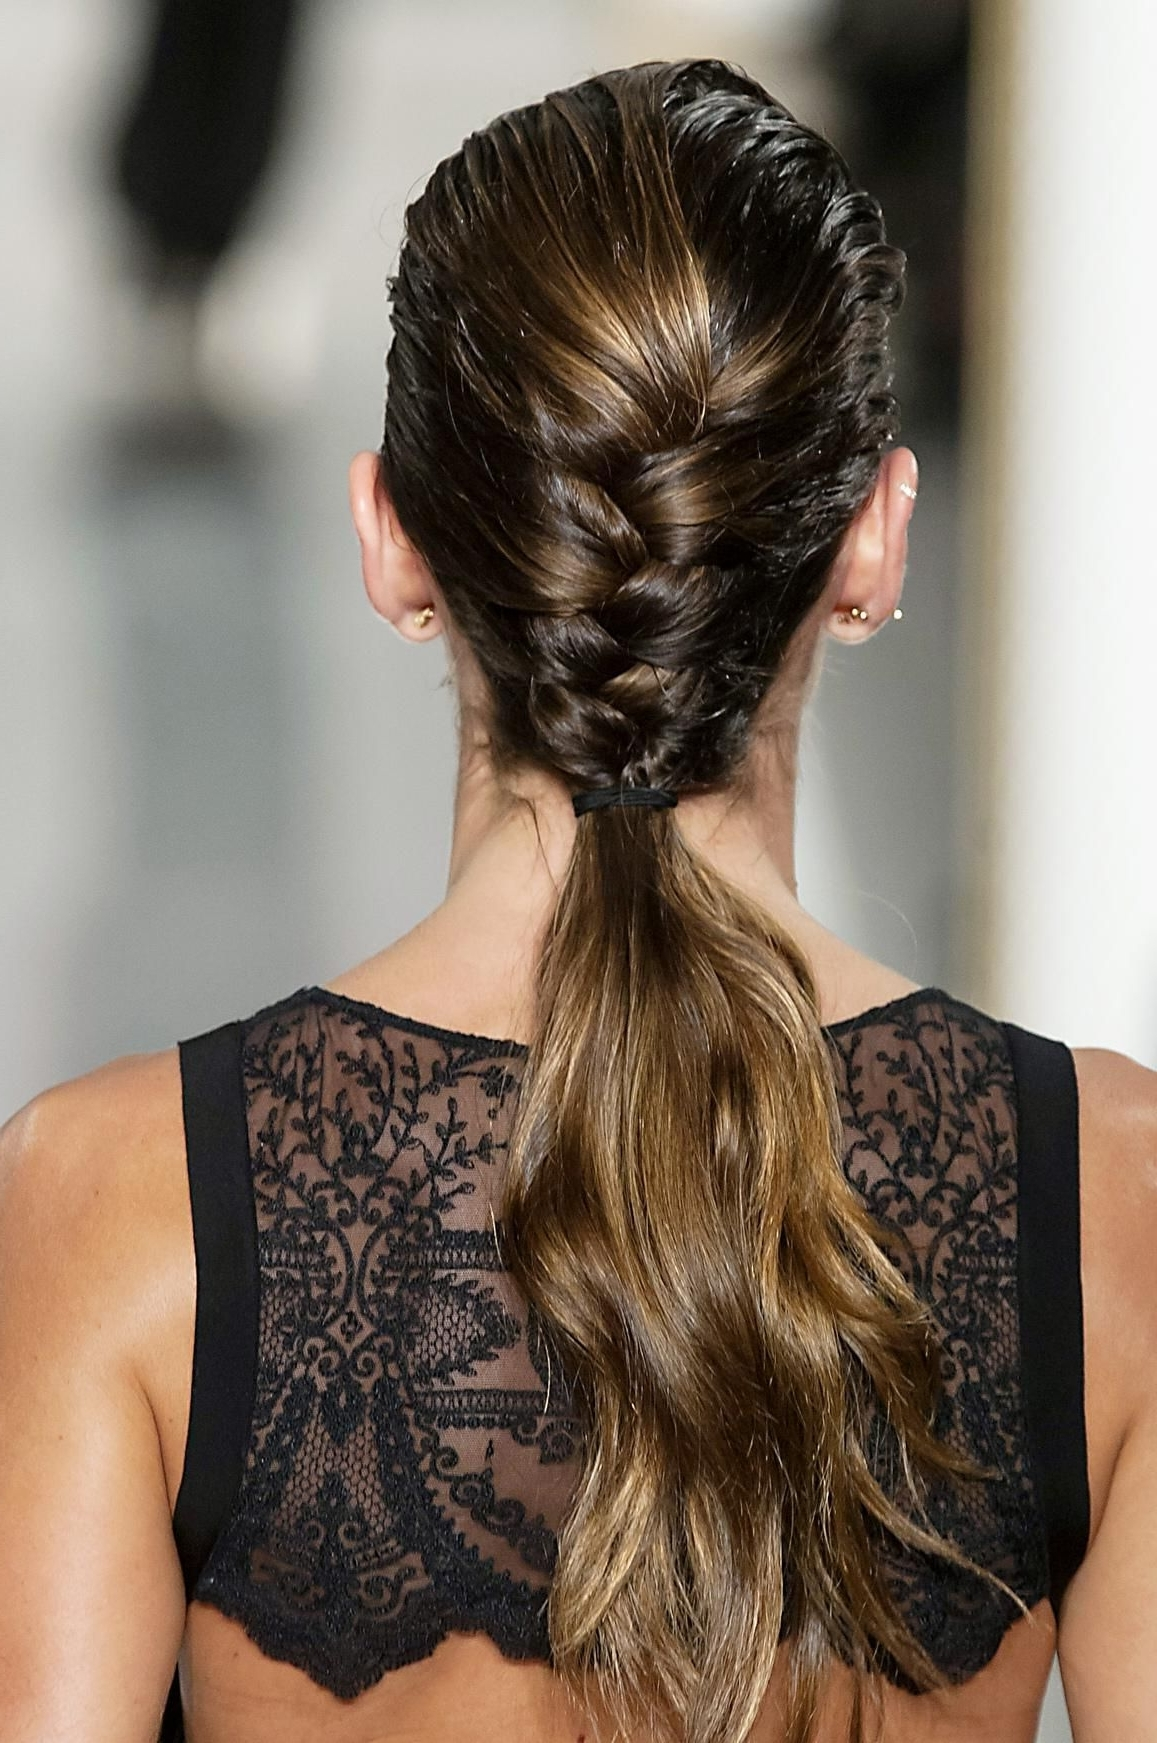 10 Hairstyles To Help Hide Outgrown Roots (View 17 of 20)